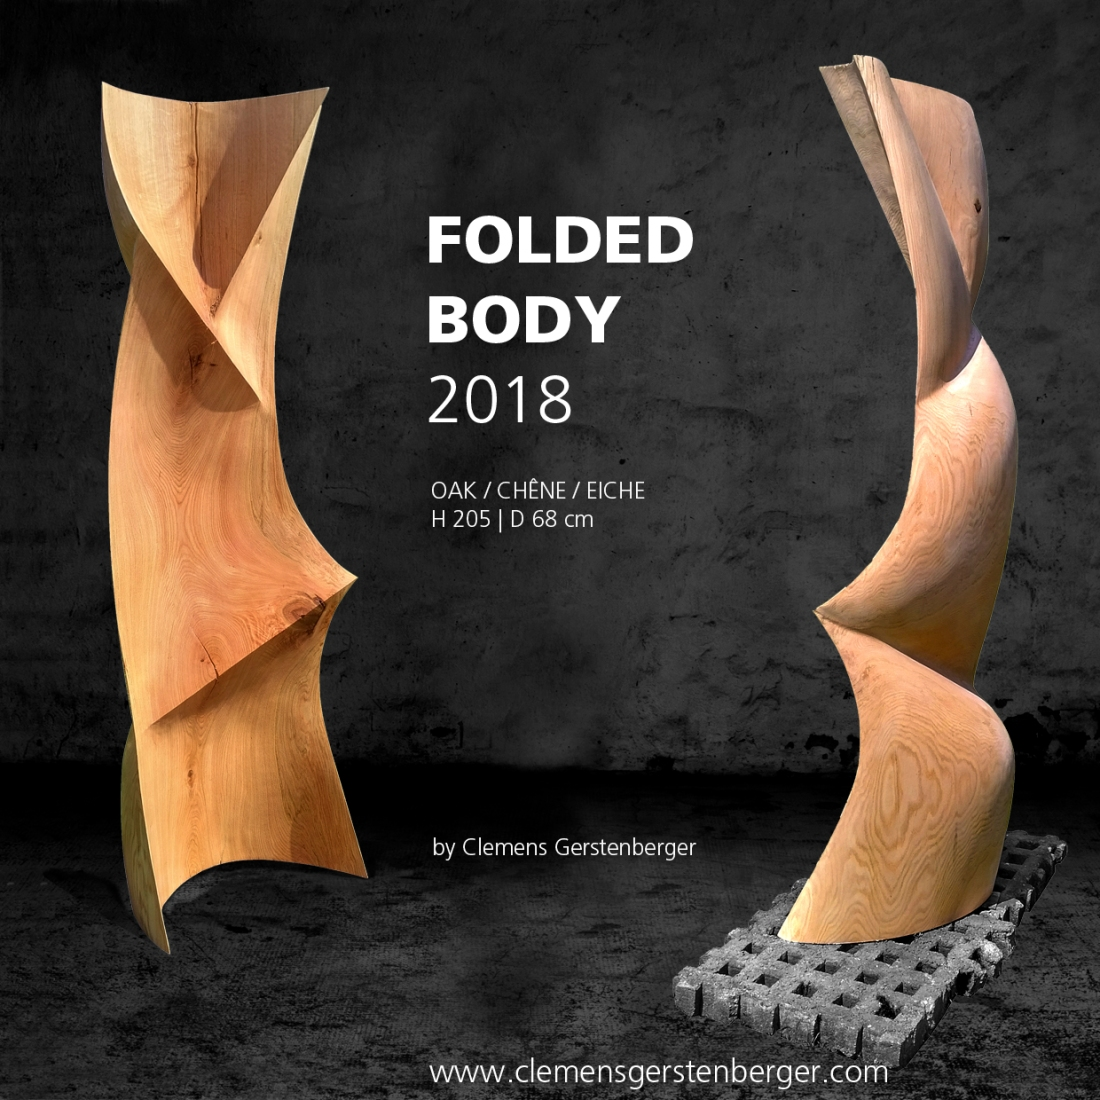 Folded_Body_sculpture2018_Gerstenberger